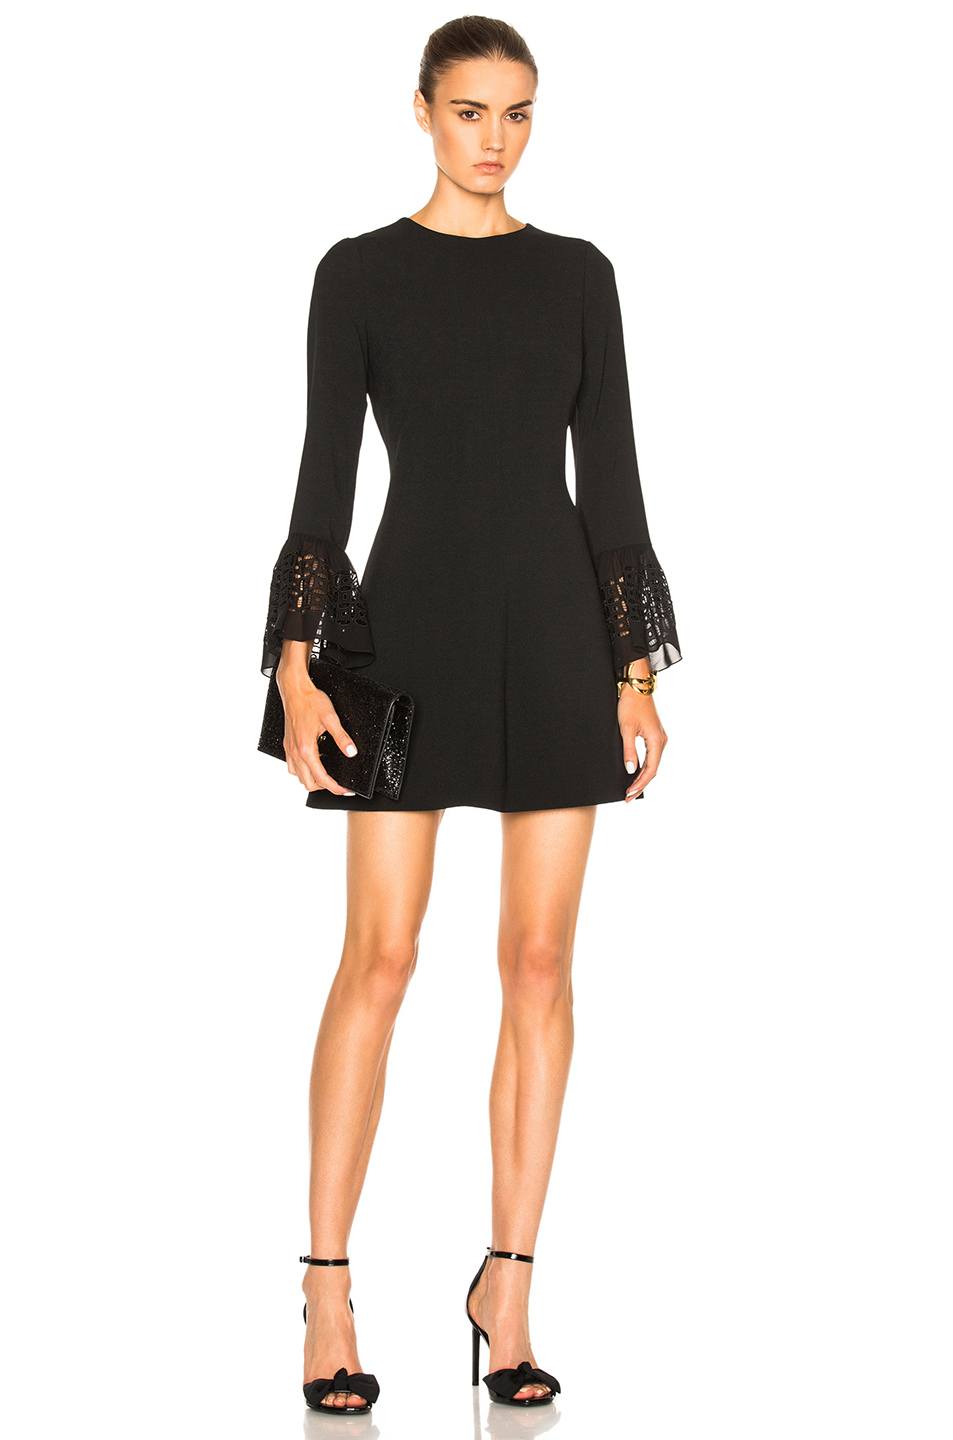 Saint Laurent Embroidered Sleeve Dress in Black